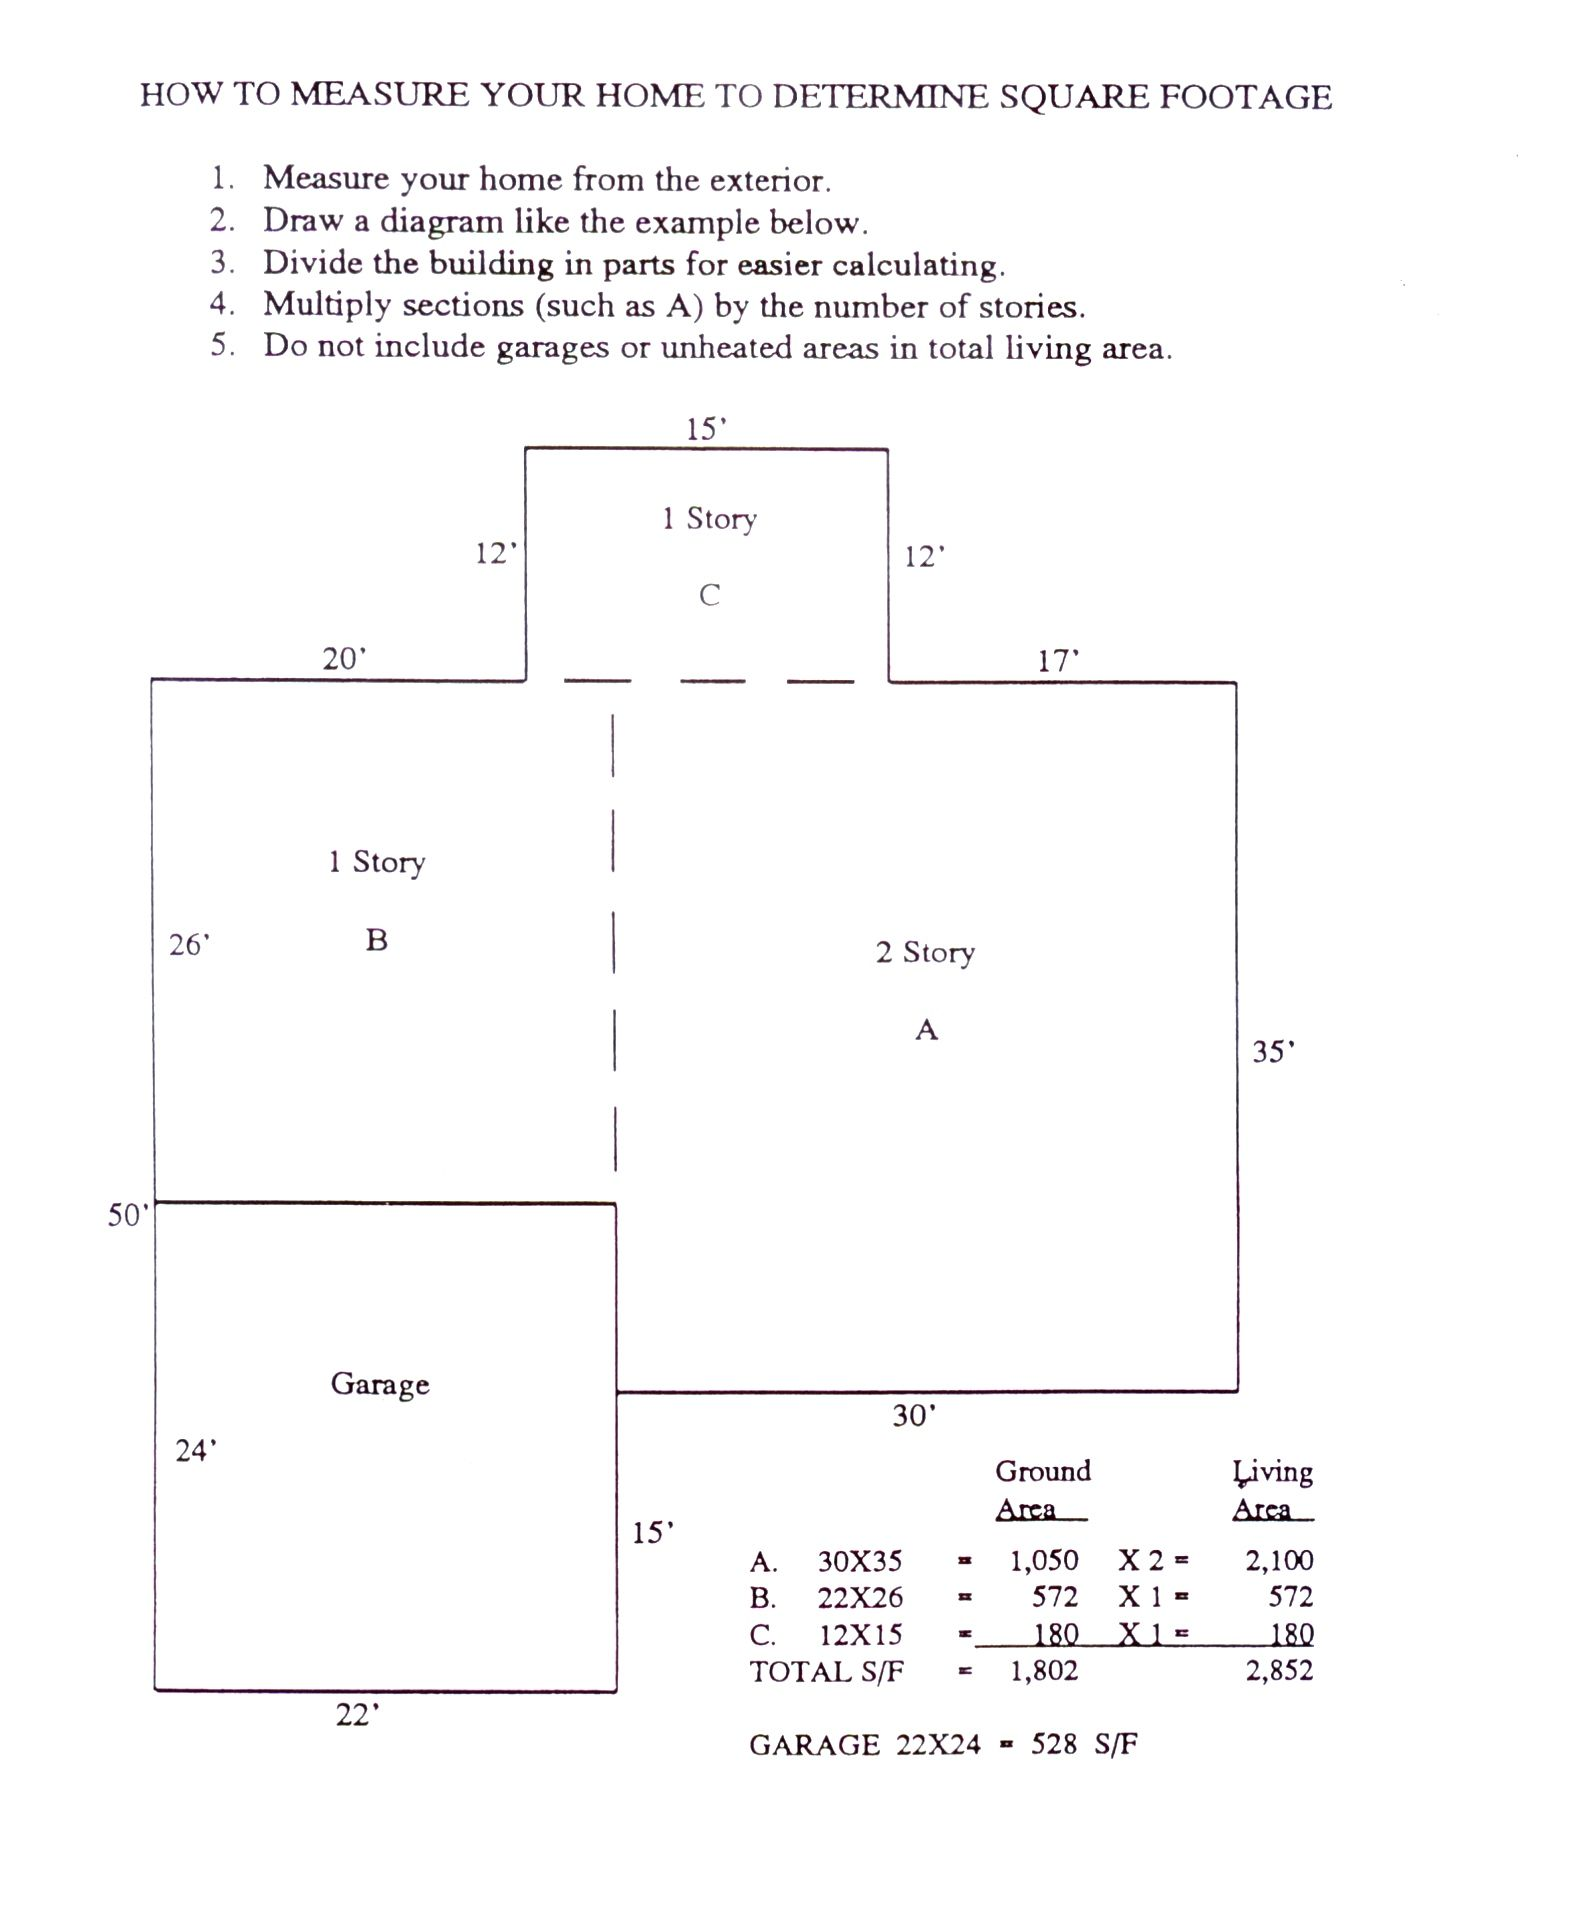 Measure Square Footage Tiles for sale, House siding cost